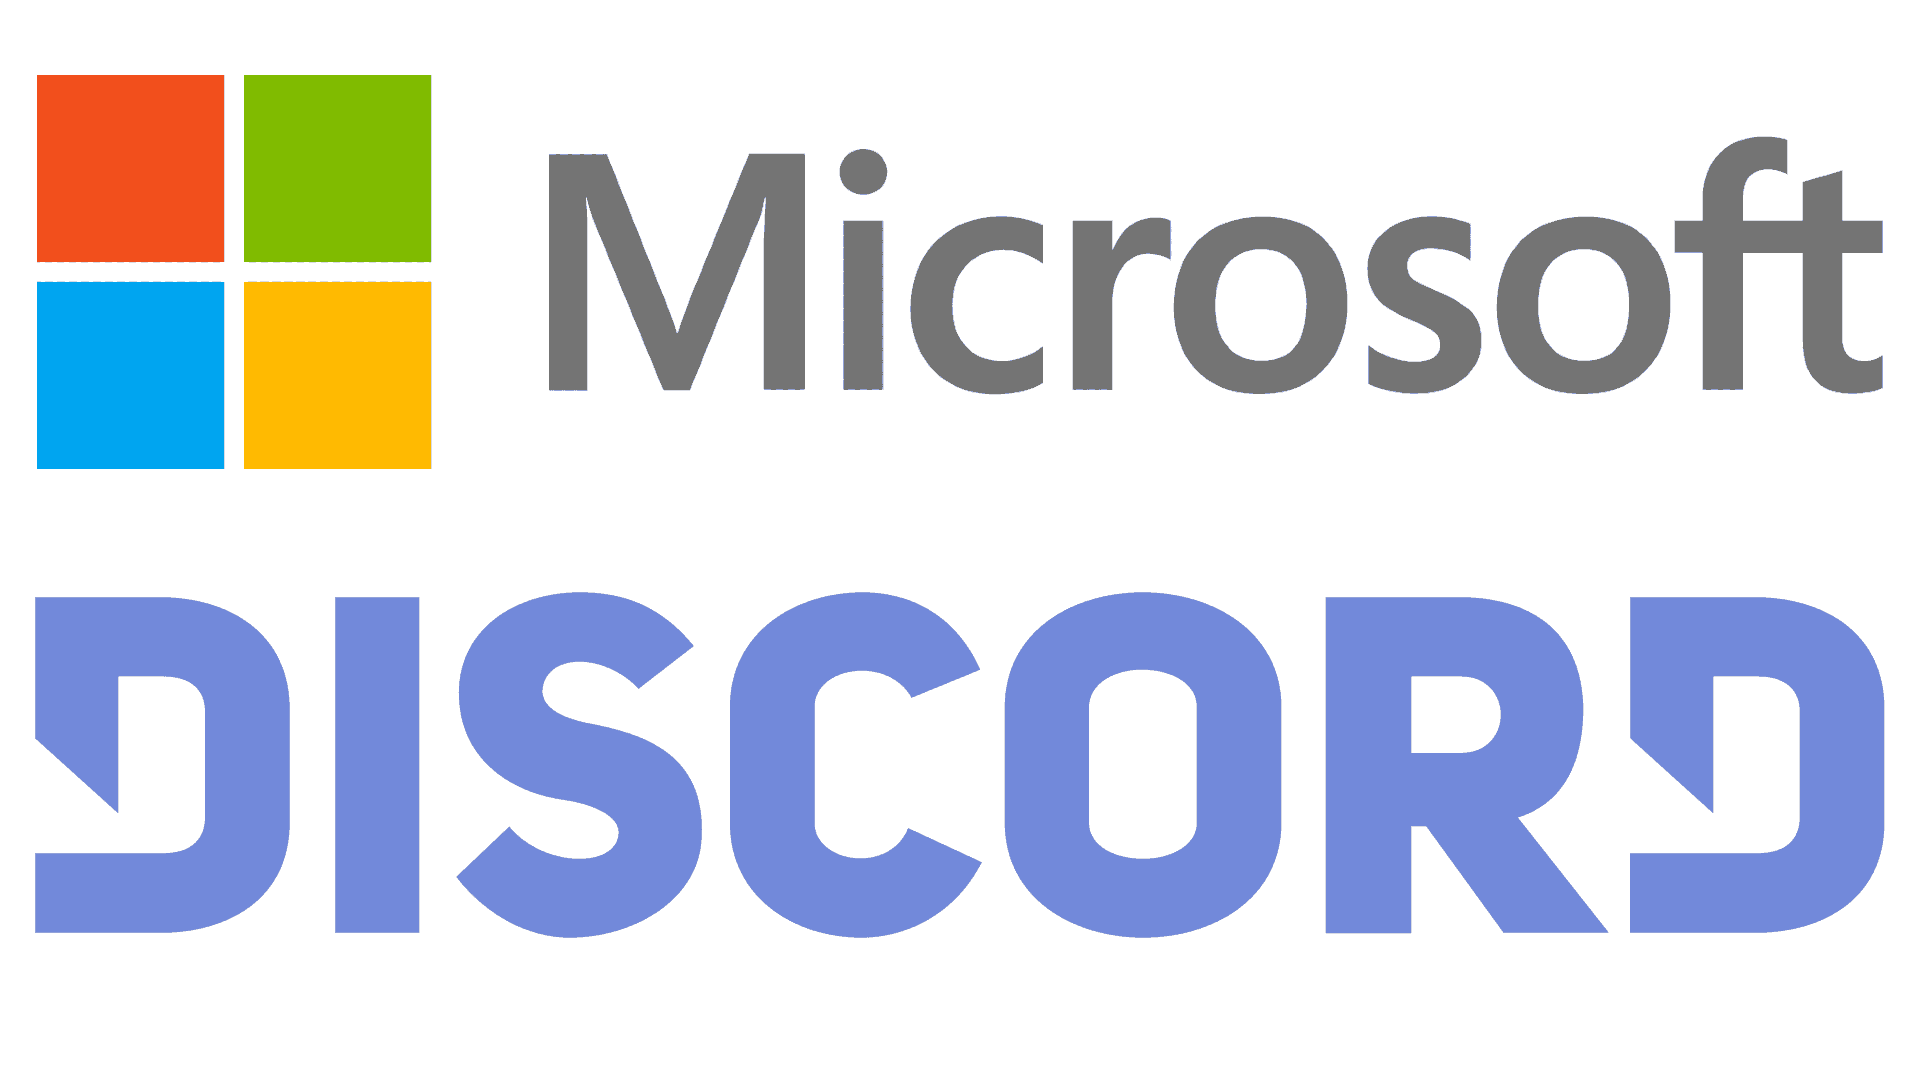 Why Microsoft wants to acquire Discord